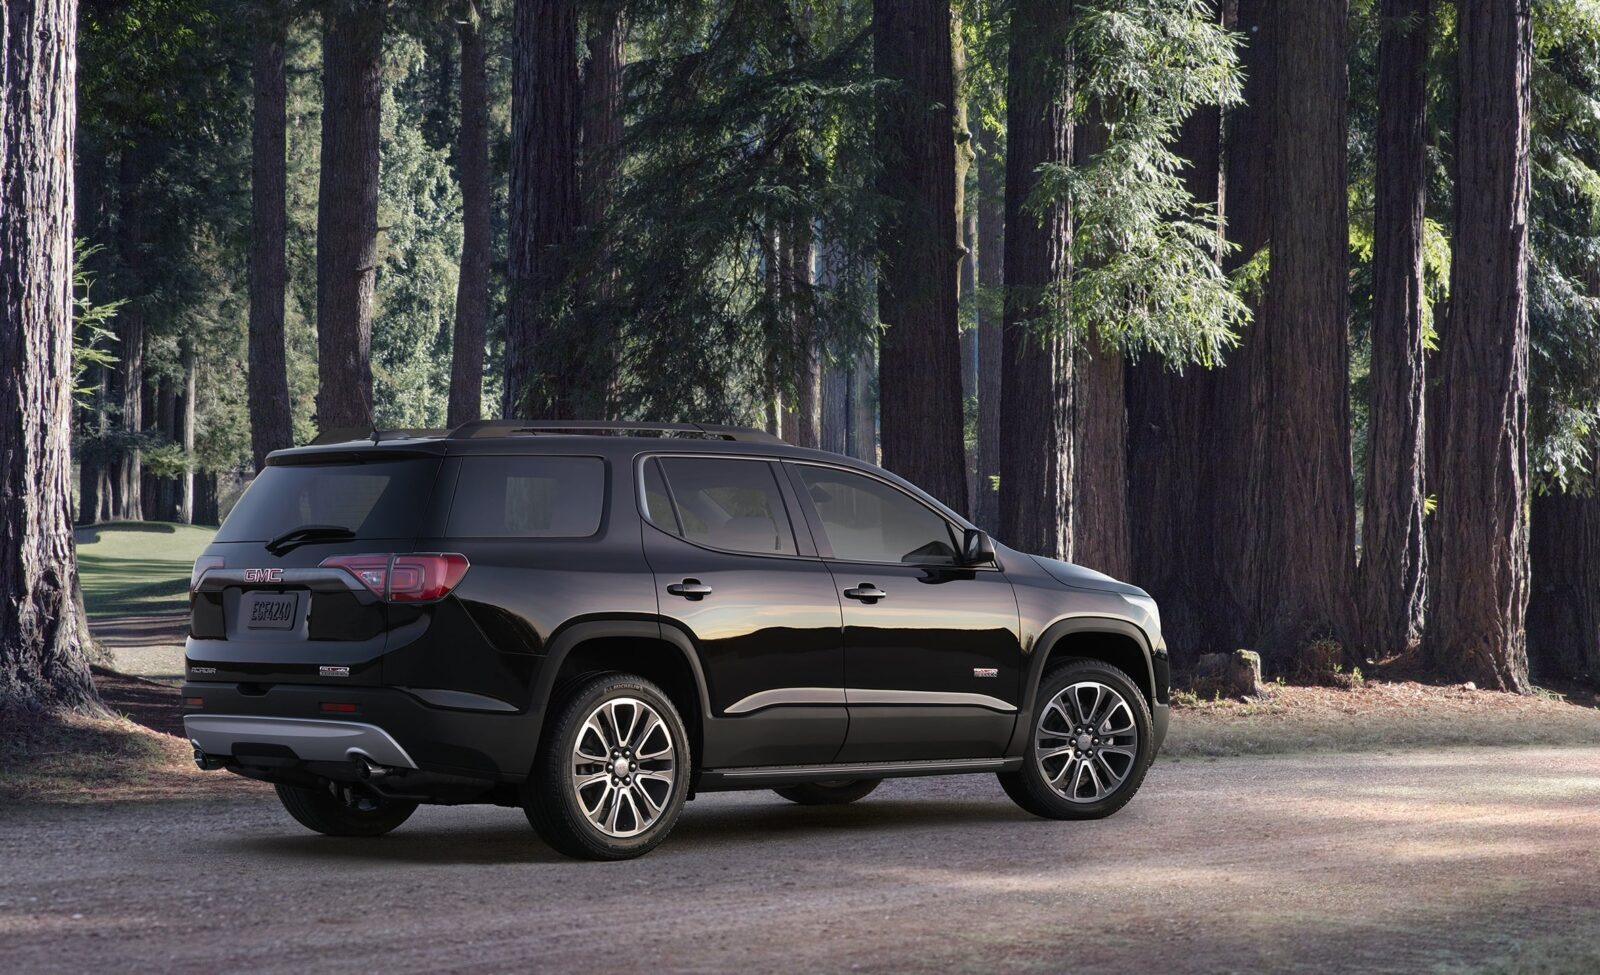 2017 All-New GMC Acadia All Terrain picture